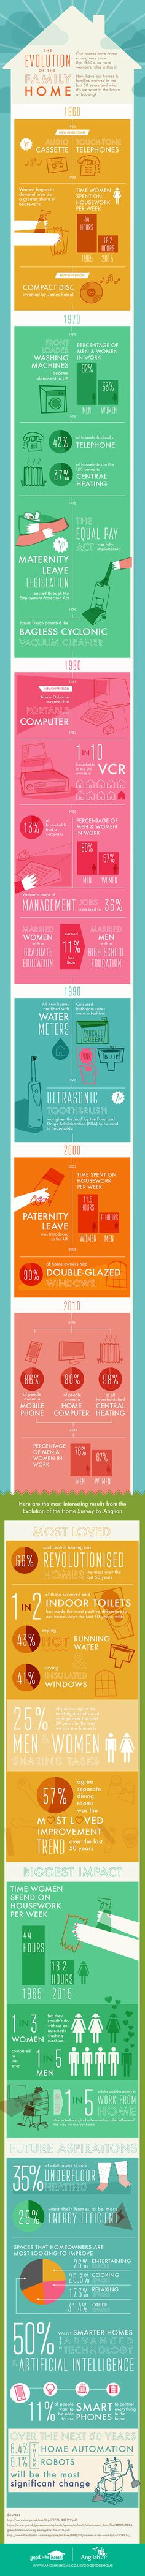 The Evolution of the Family Home #infographic #HomeImprovement #Garden…